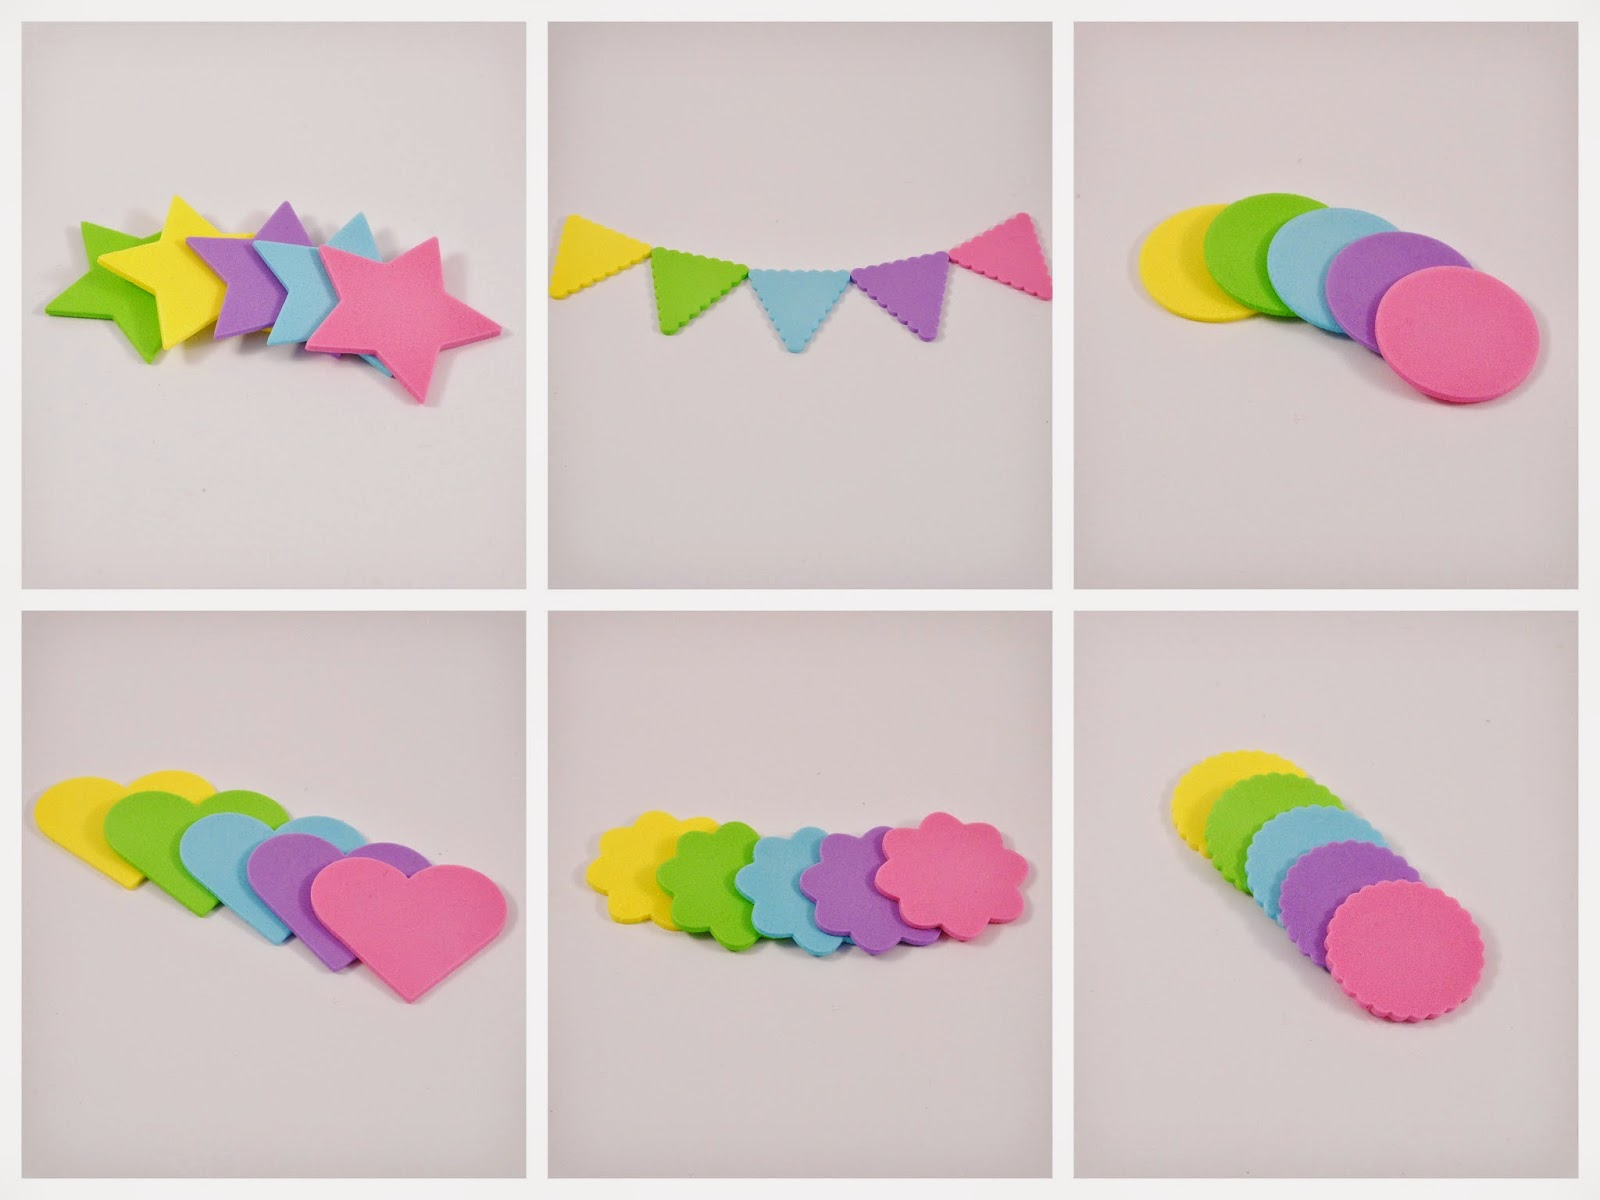 foam shapes kids crafts scrapbooking